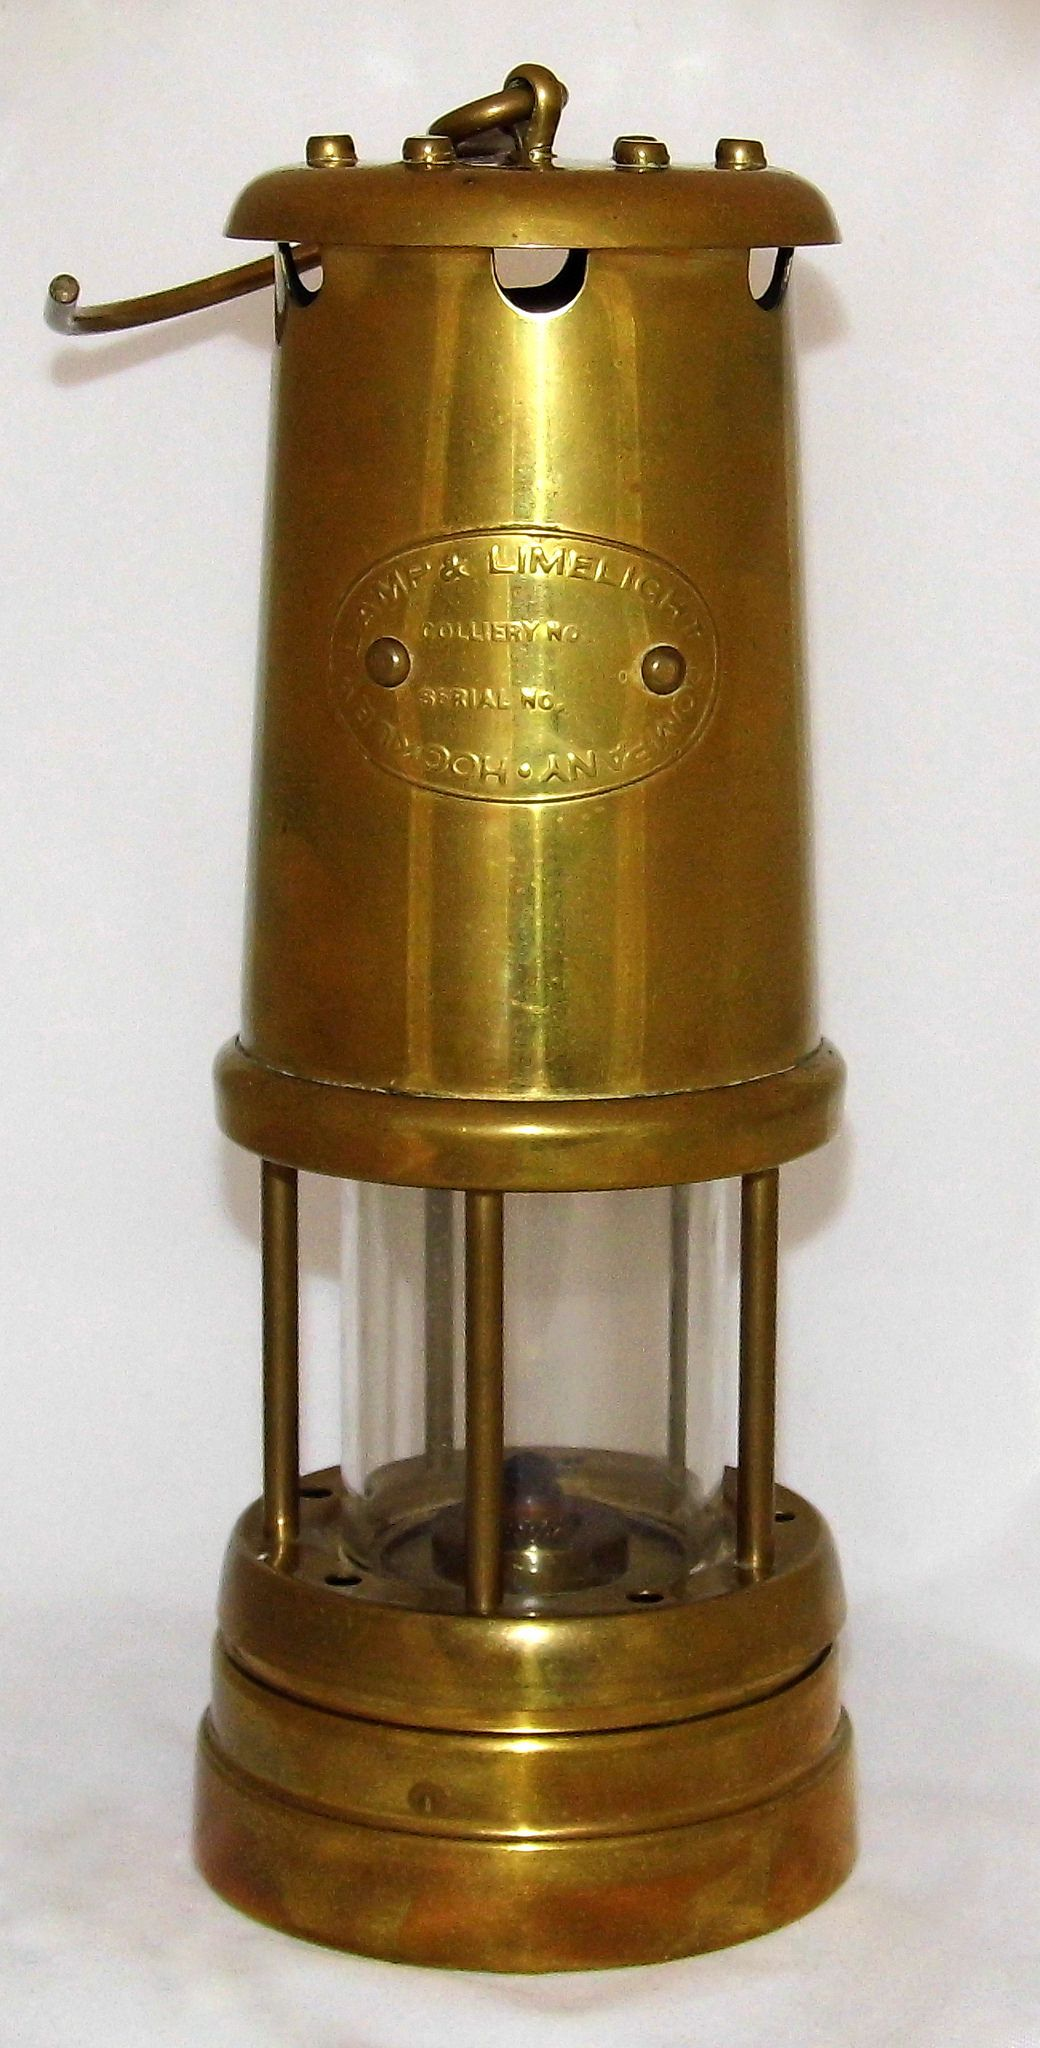 Vintage Brass Miner S Lantern By Hockley Lamp Limelight Company 8 5 Inches Tall Excluding Hanging Hook Old Lanterns Hockley Vintage Brass